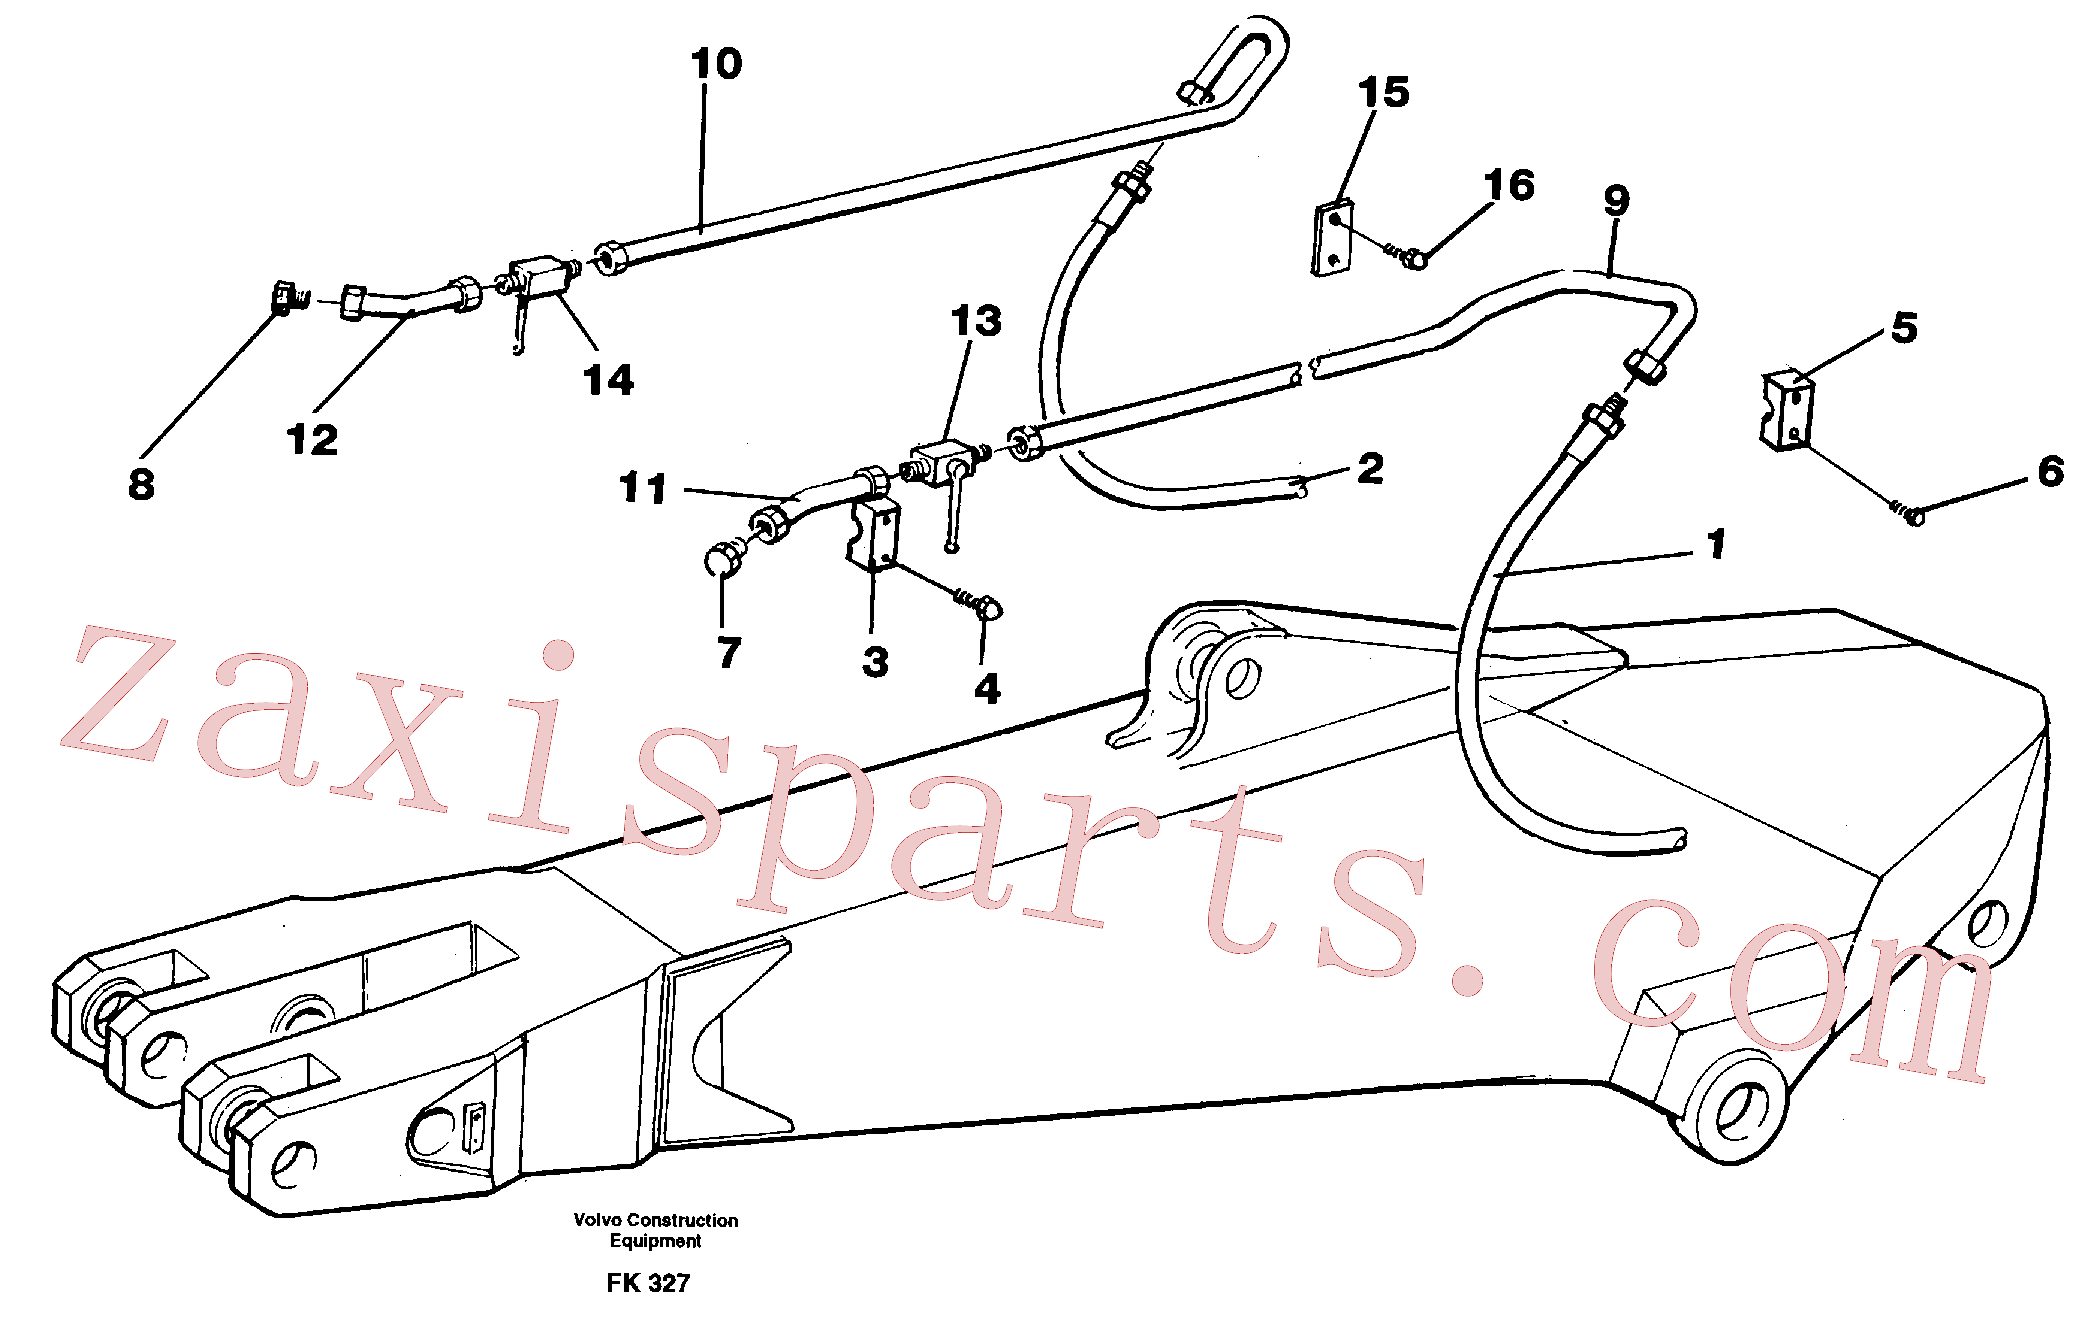 VOE14263478 for Volvo Hammer hydraulics for dipper arm incl. shut-offcocks.(FK327 assembly)